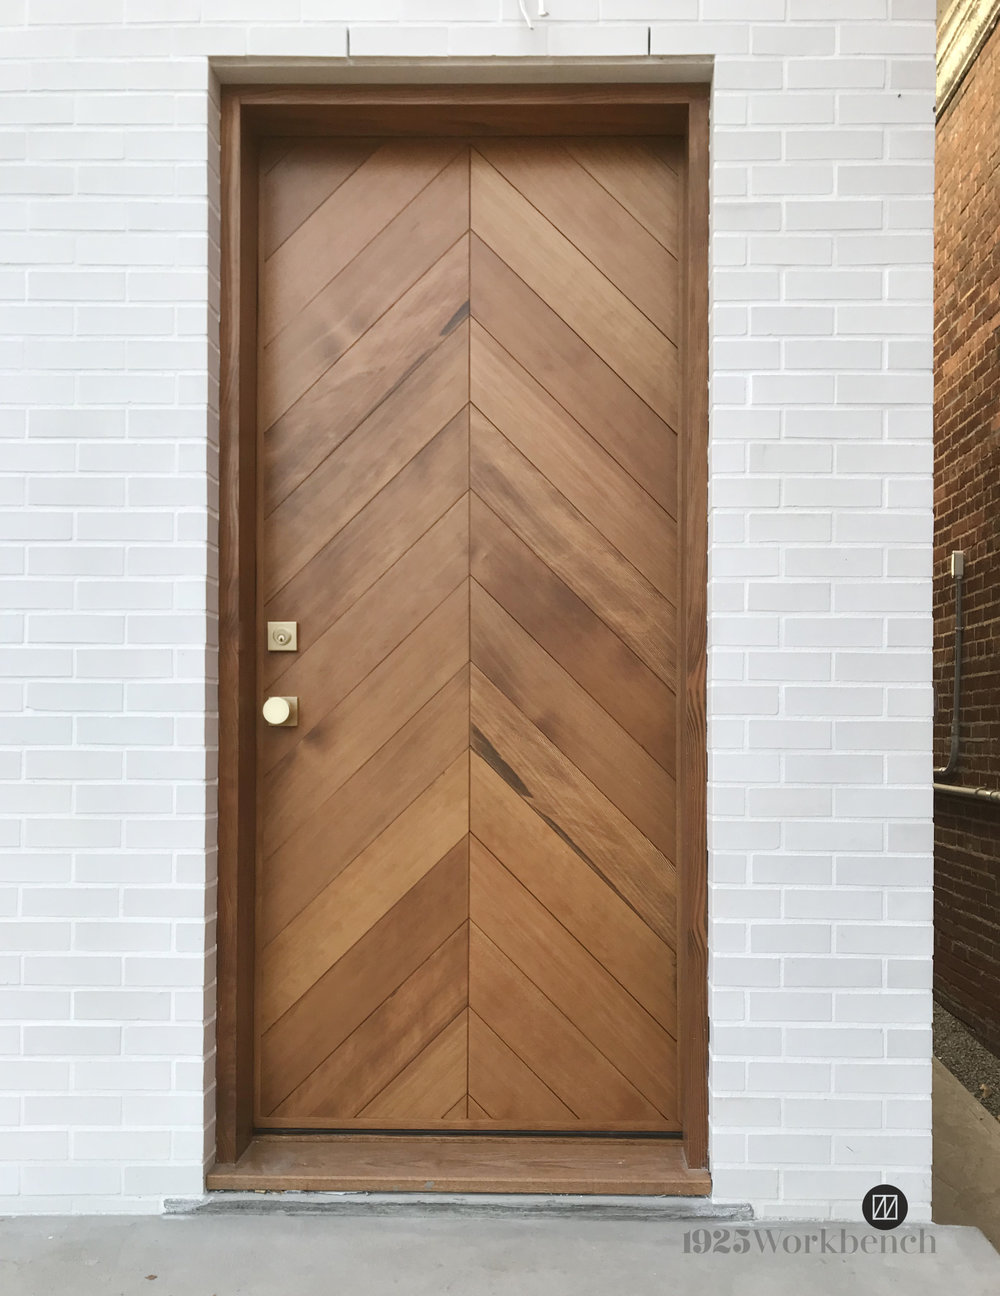 Douglas Fir door in chevron pattern.